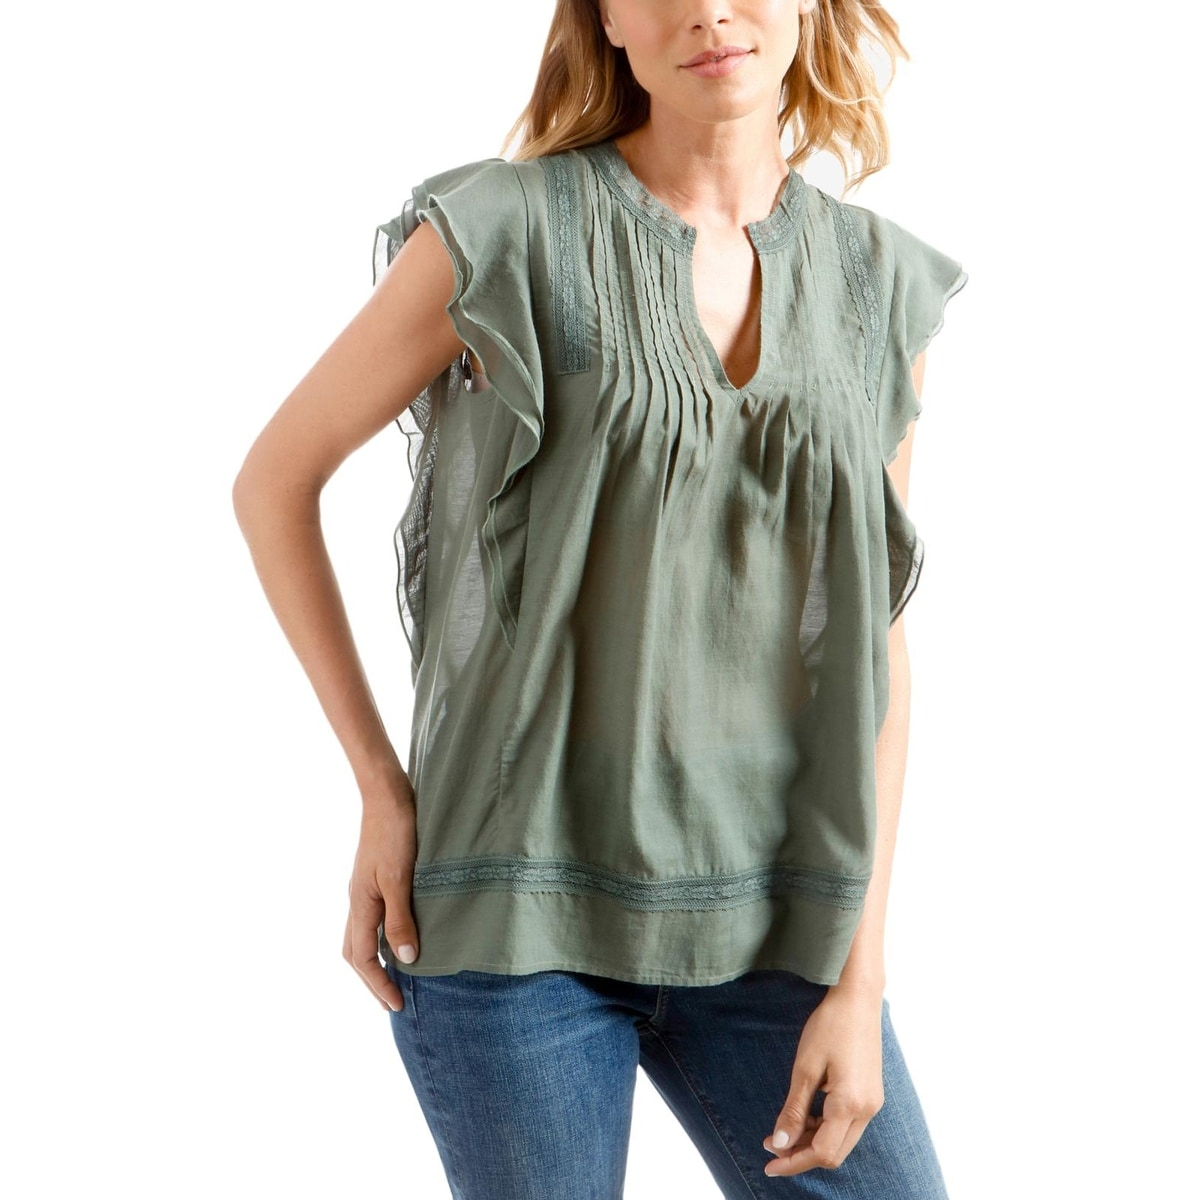 Women's Shopping Lucky TopsFind Deals Brand Great At Clothing KlJTFc1